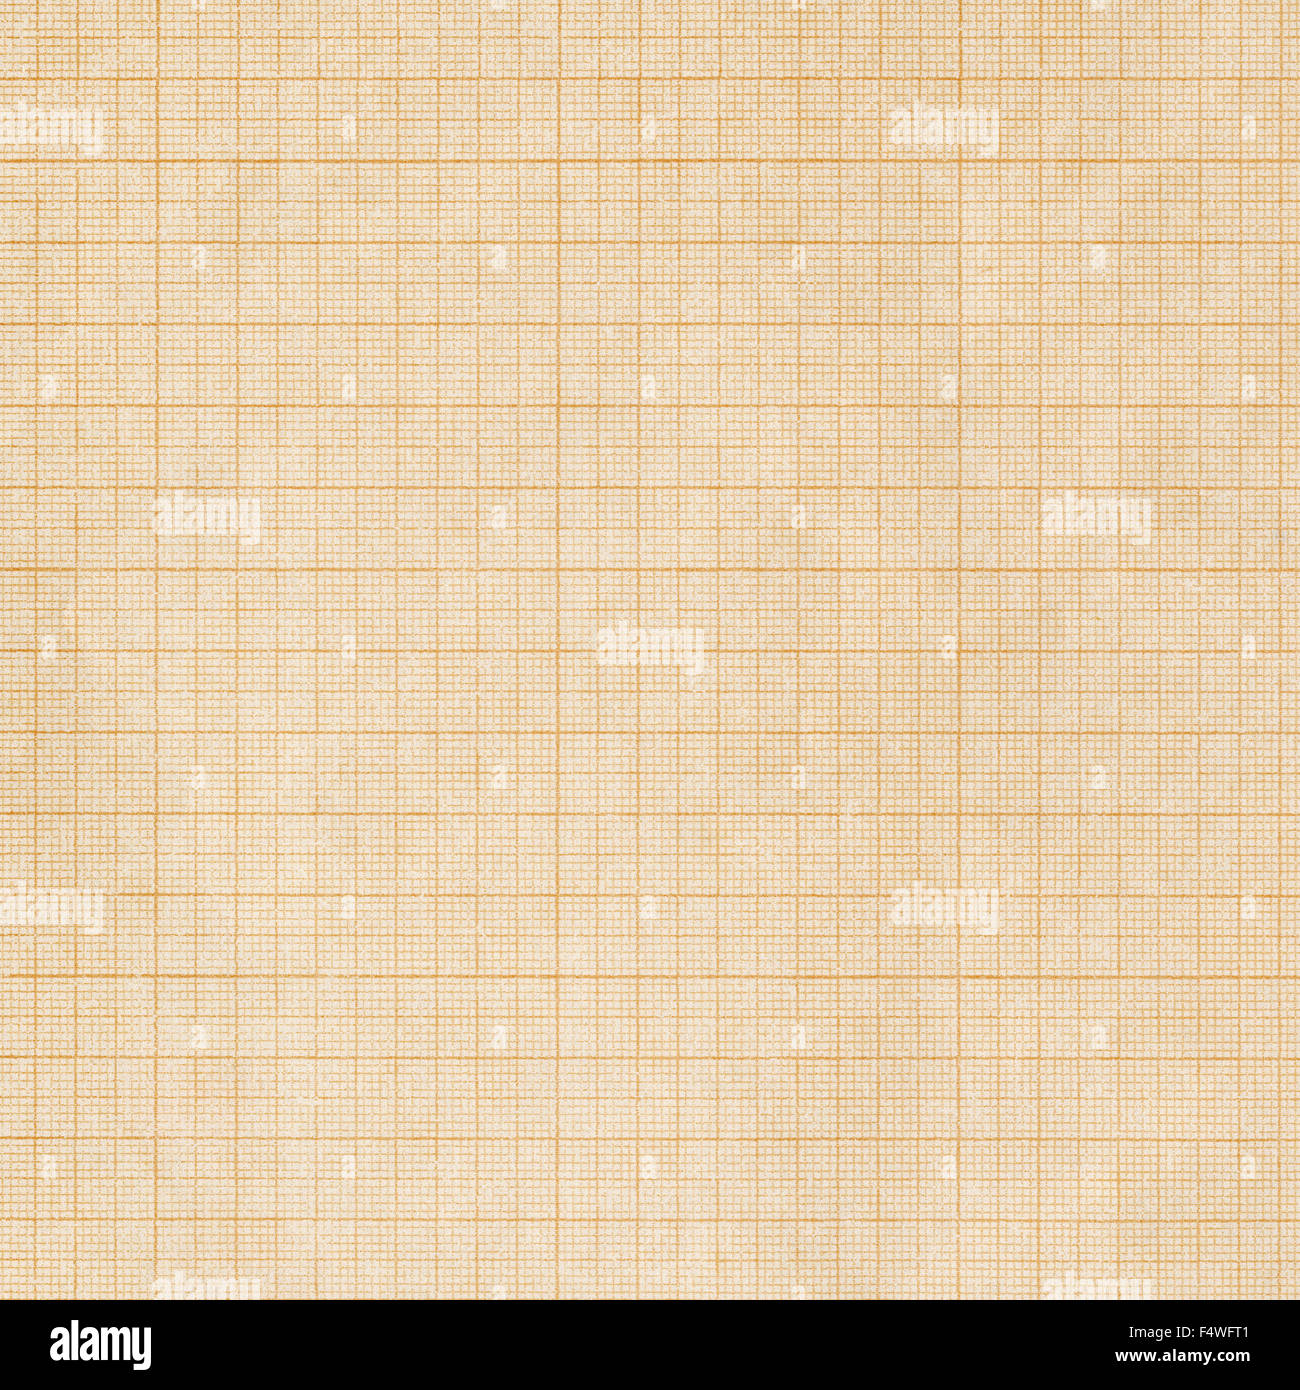 graph paper texture square grid background stock photo 89071697